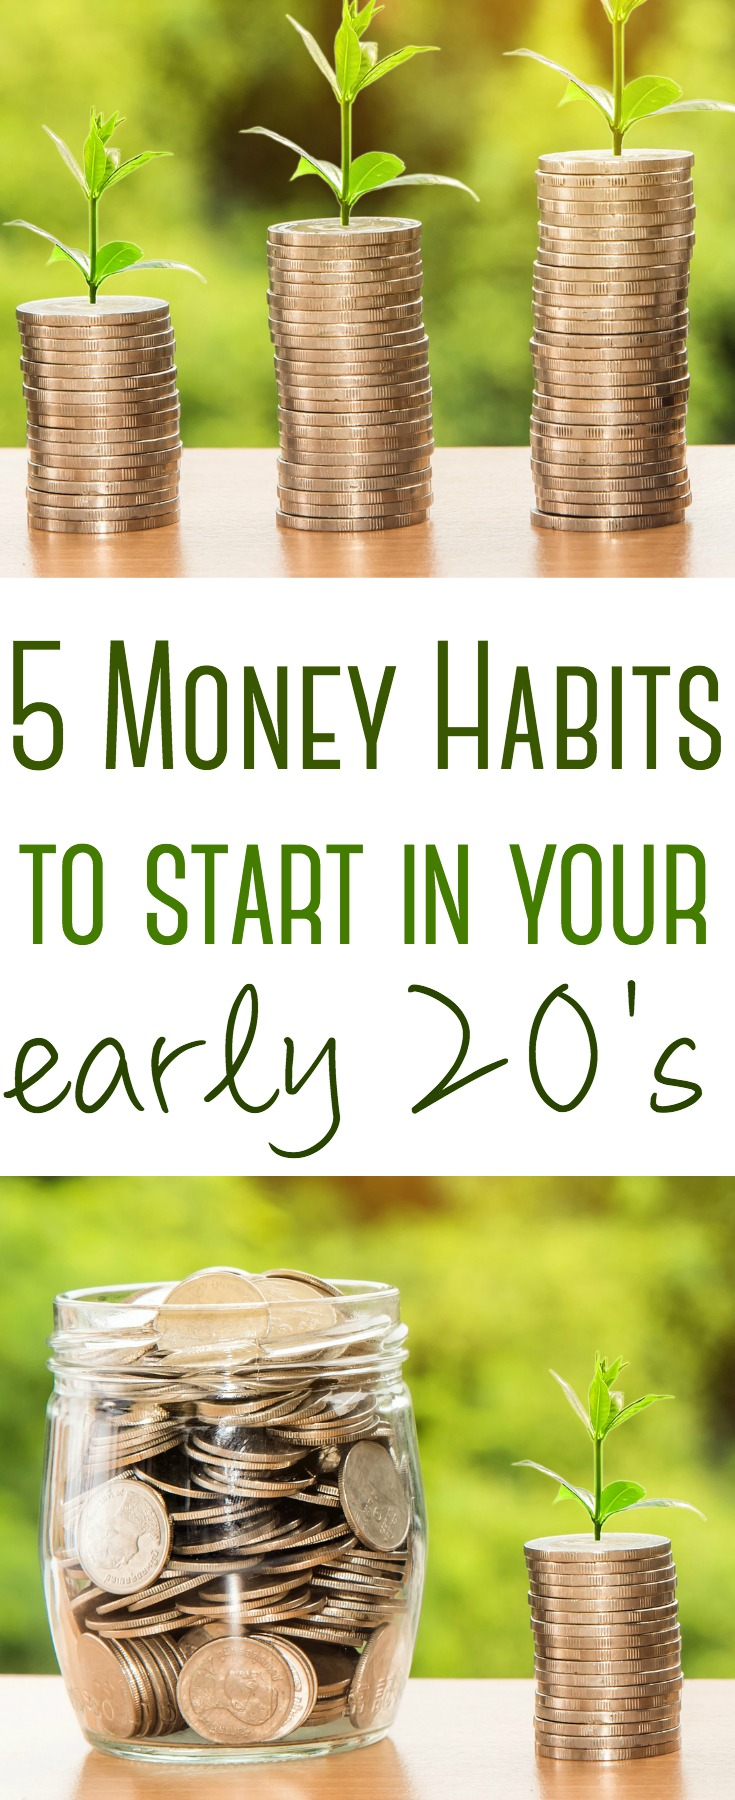 The patterns we set now will set the tone for success or failure later in life. Here are five money habits to start in your 20's.